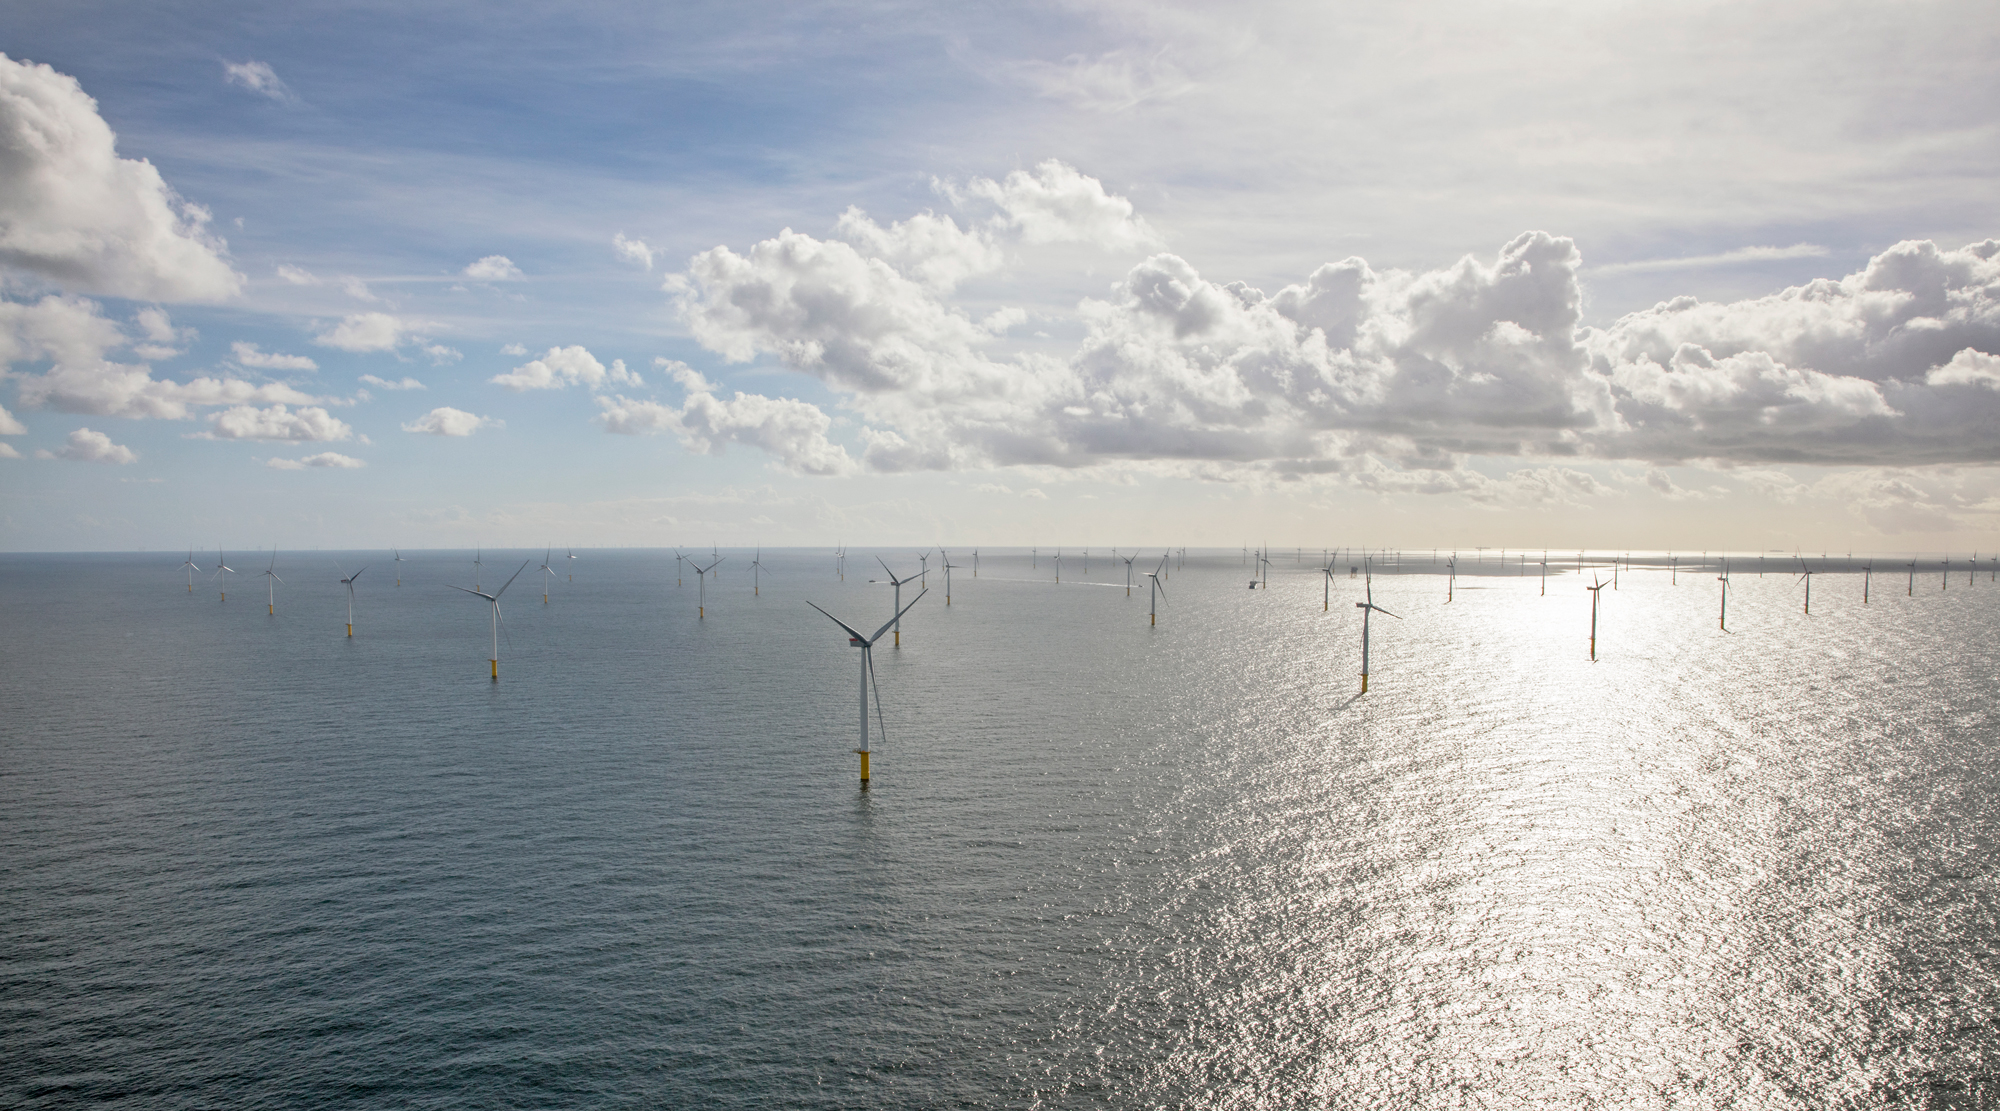 The Gemini wind farm includes 150 turbines in the North Sea.